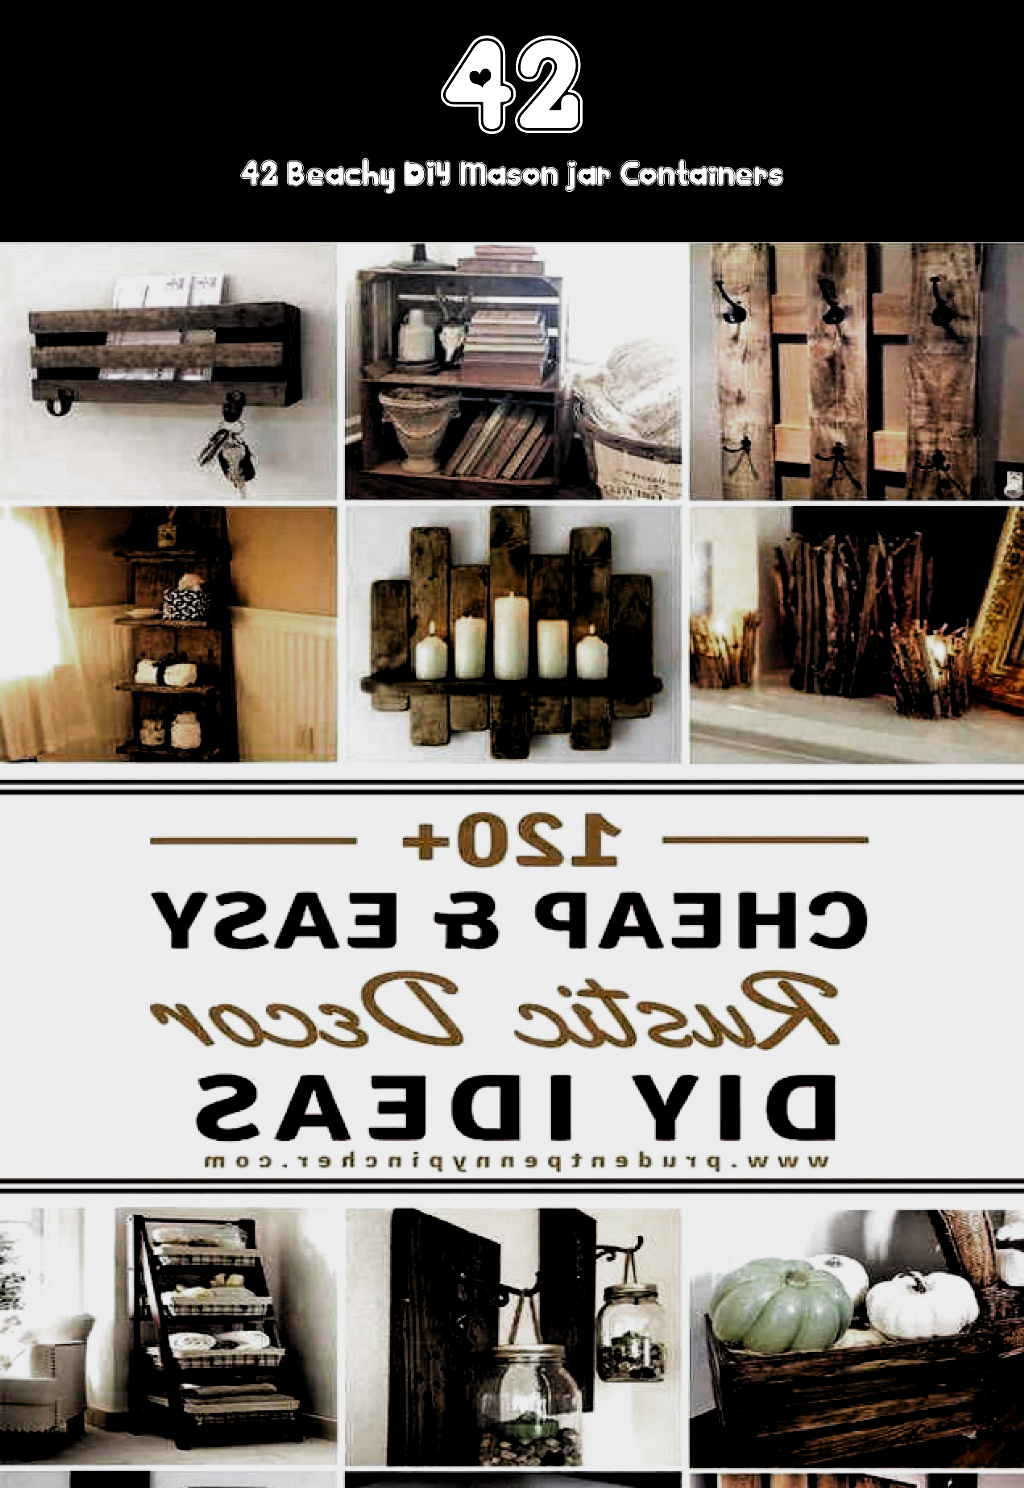 120 Cheap And Easy Diy Rustic Home Decor Ideas 120 Cheap And Easy 120 C En 2020 Decoration Rustique Idee De Decoration Decoration De Maison Rustique